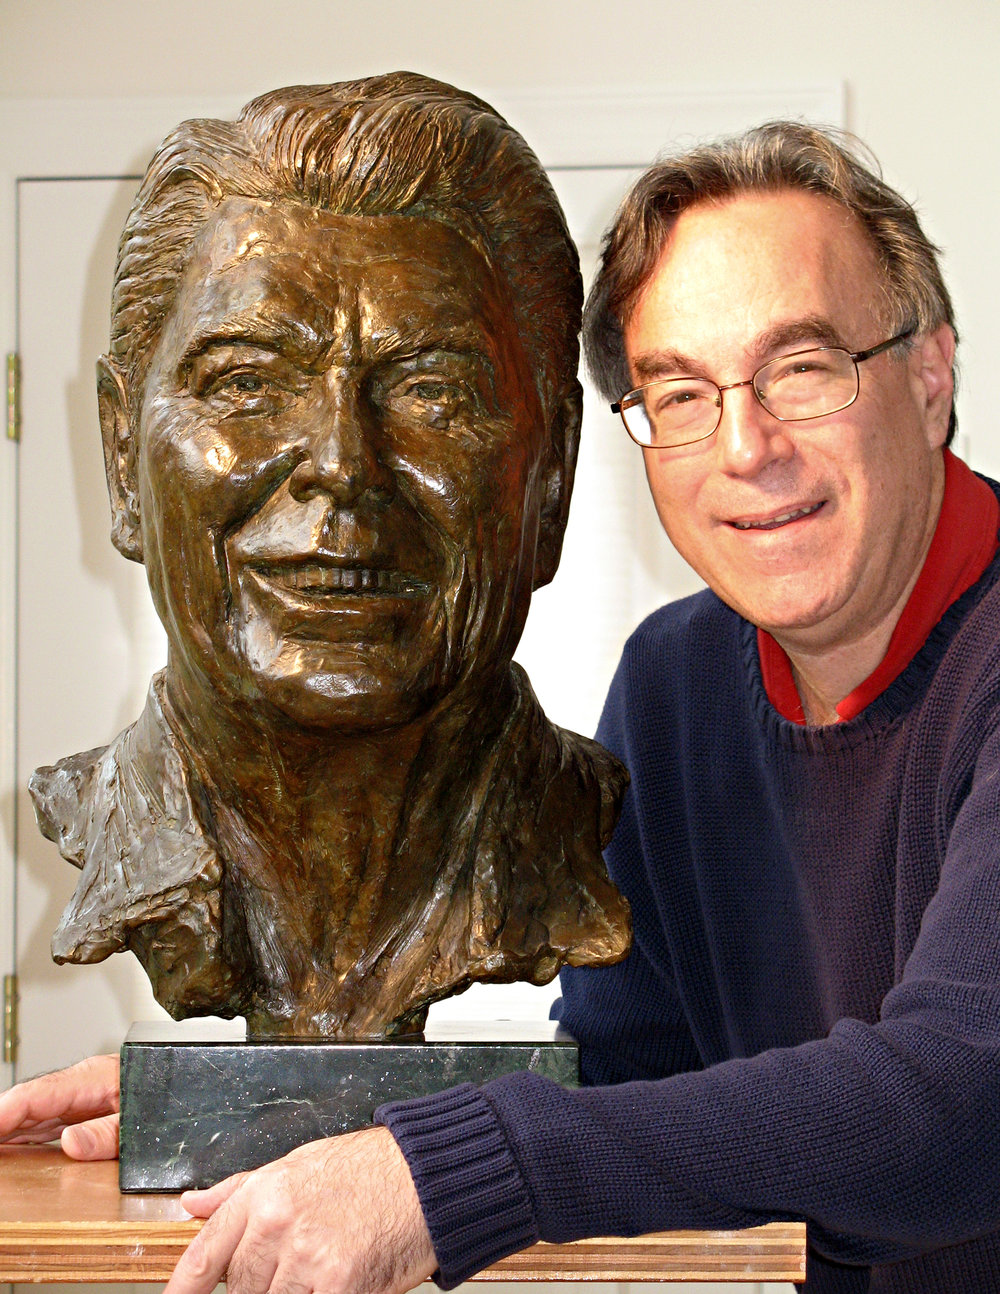 Reagan with sculptor.jpg